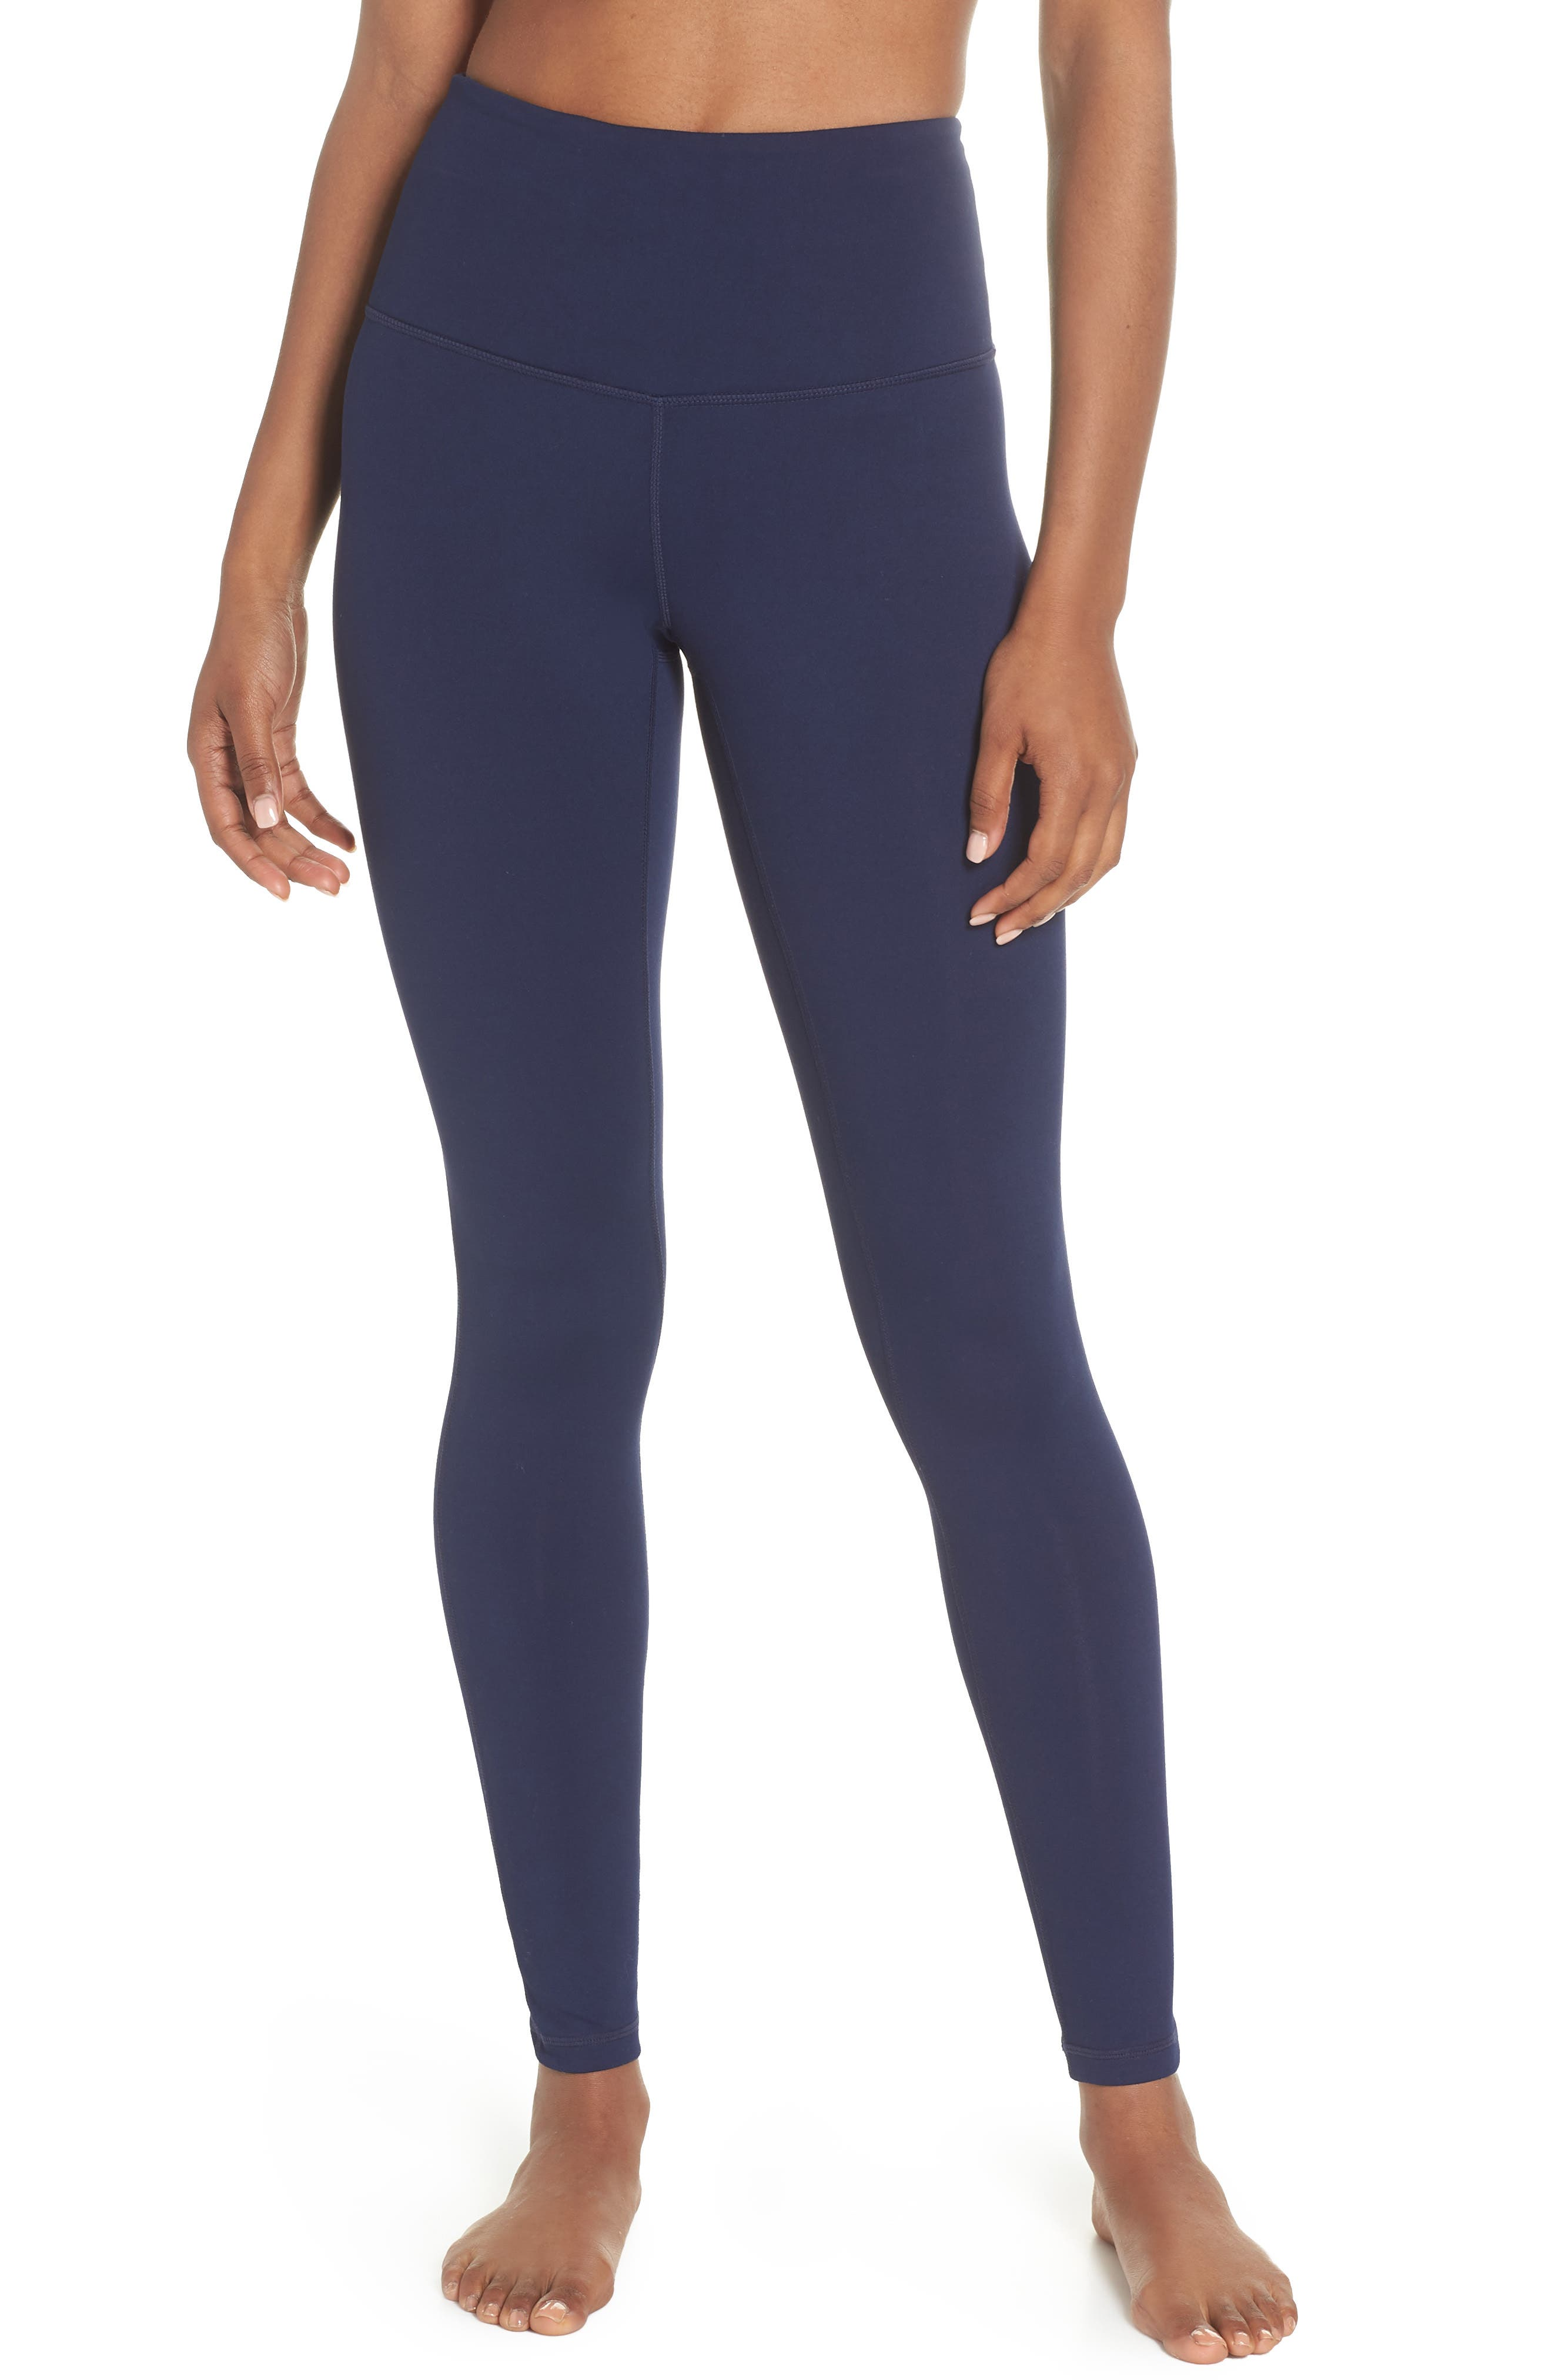 Live In High Waist Leggings,                             Main thumbnail 1, color,                             Navy Maritime